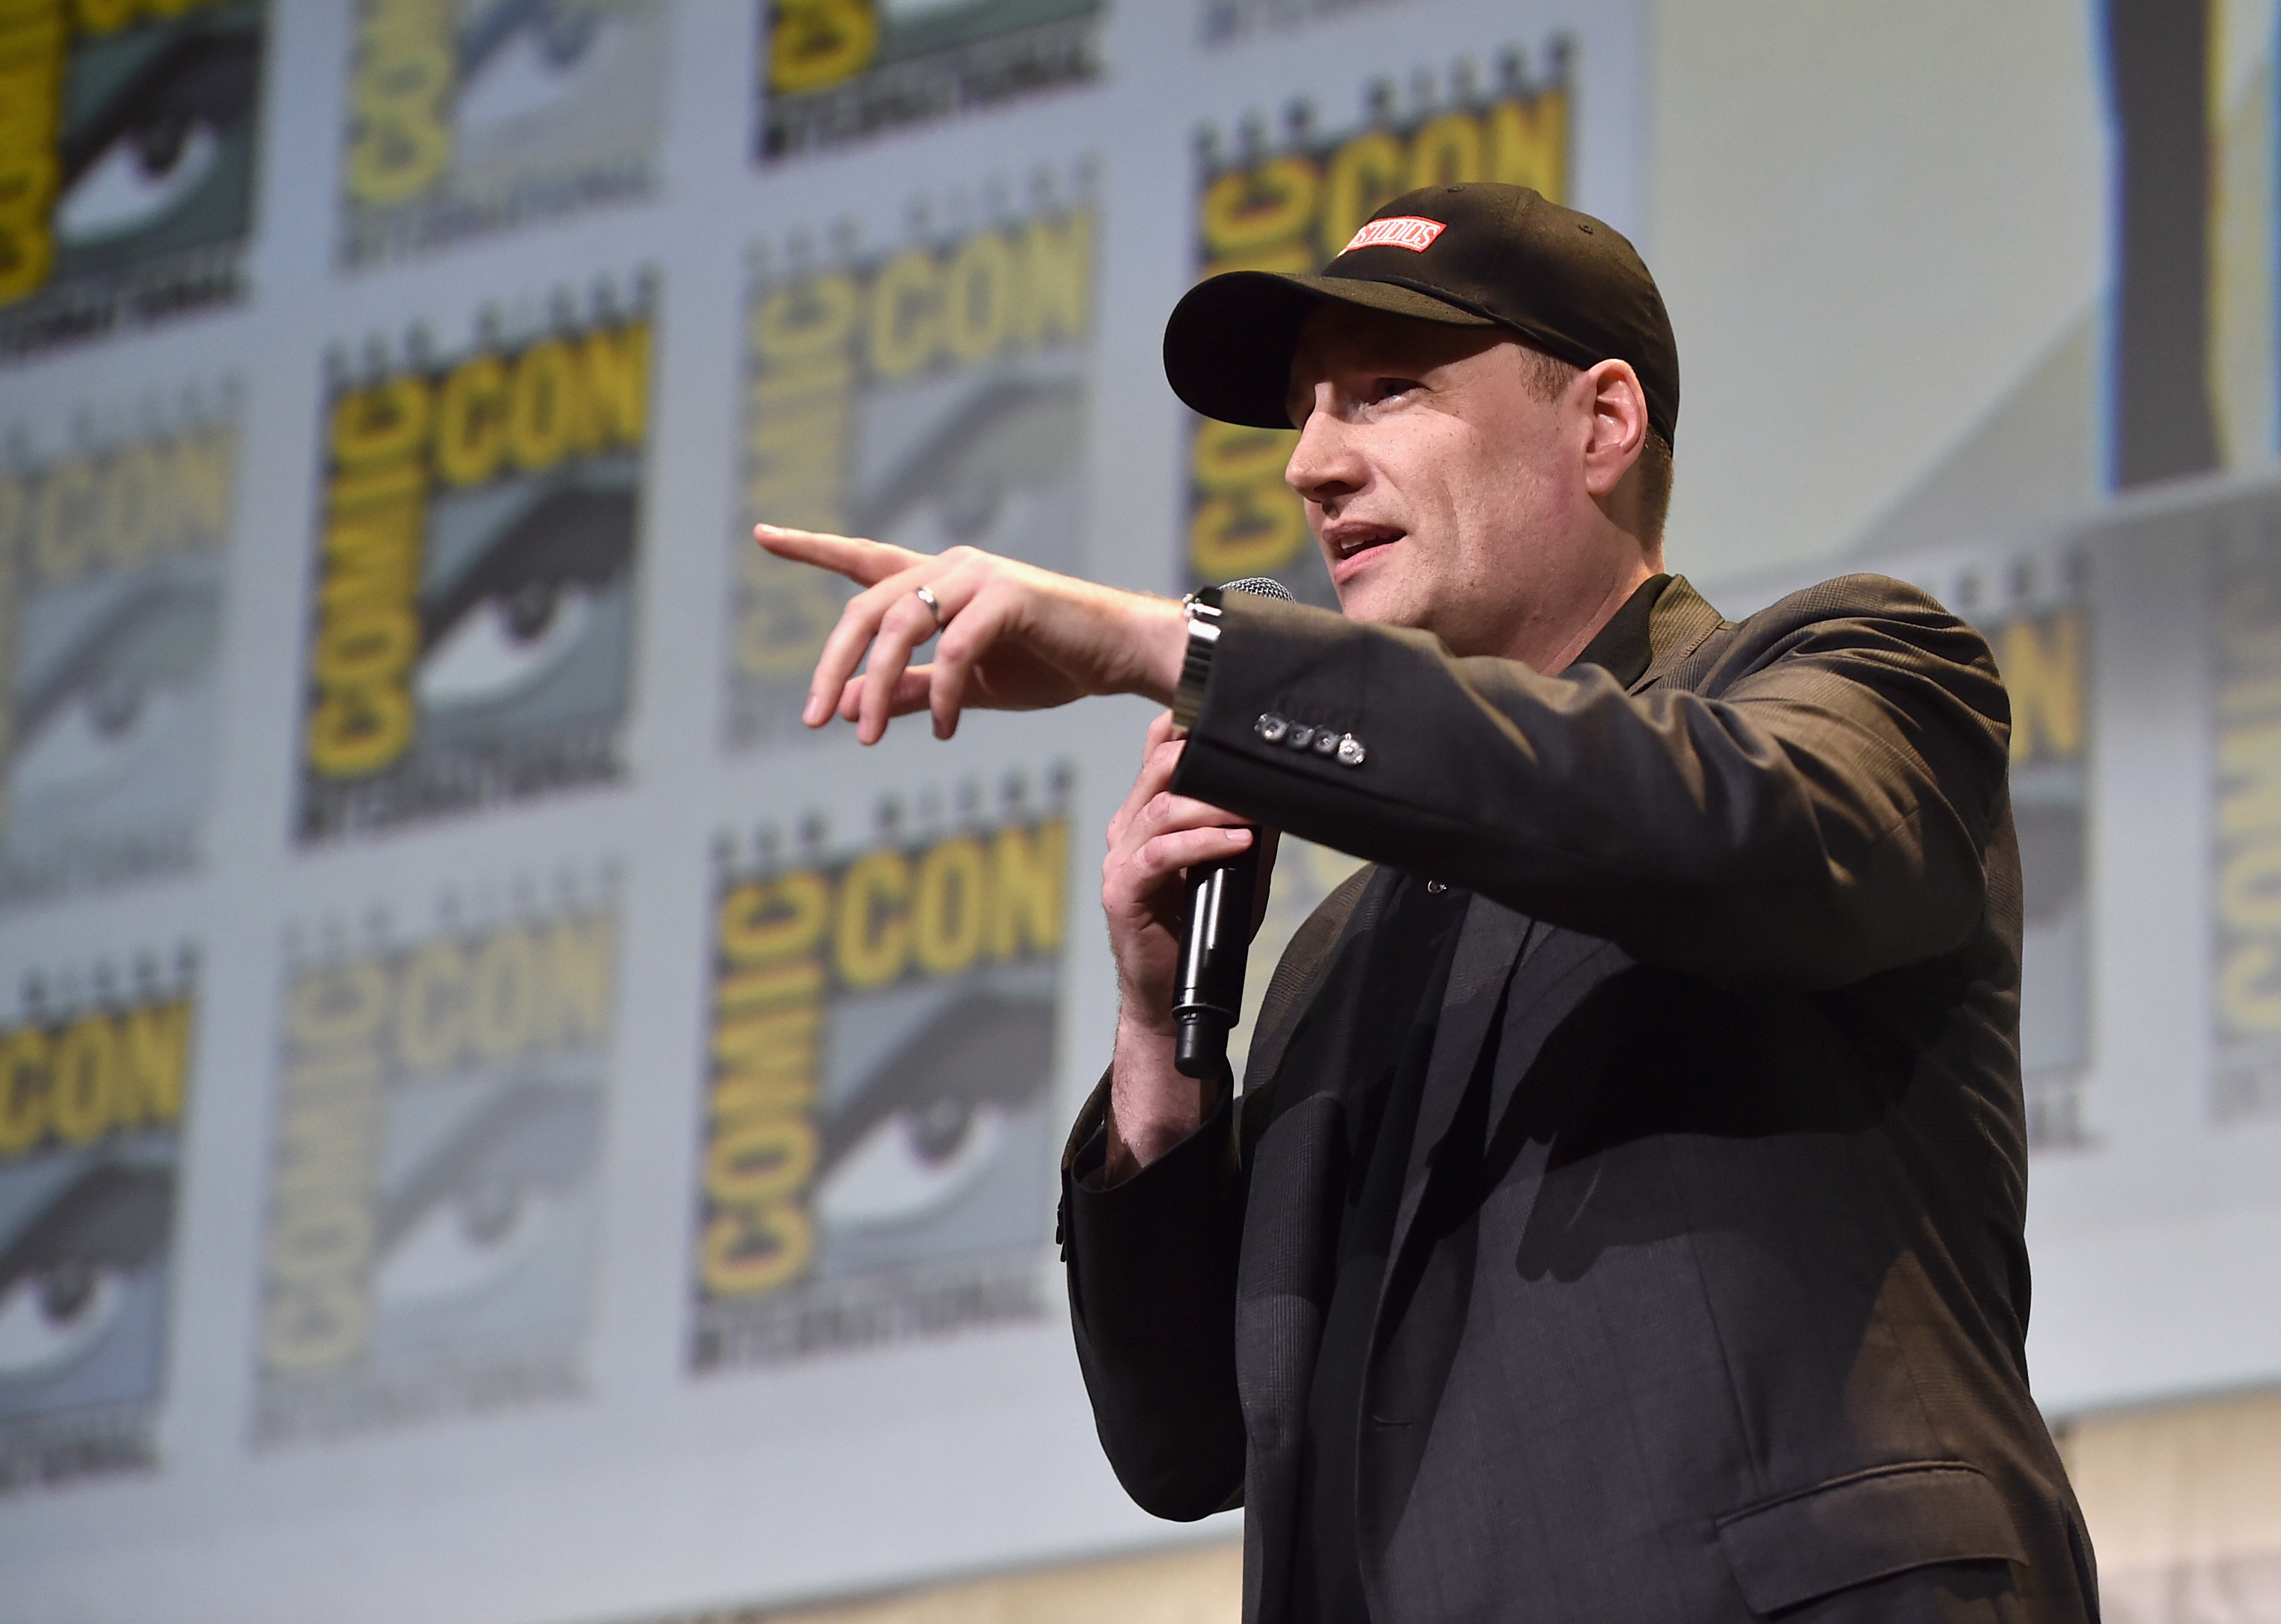 Kevin Feige on Avengers 4 Title, Marvel Reshoots, and More